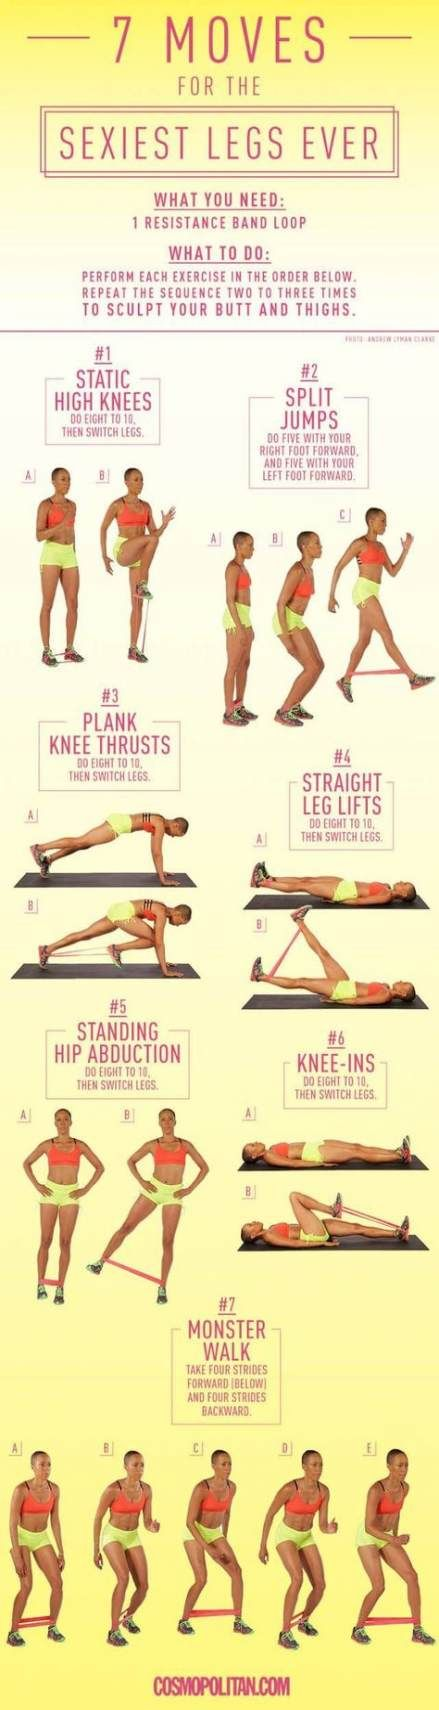 Fitness inspiration pictures shape butt workouts 55+  ideas #fitness